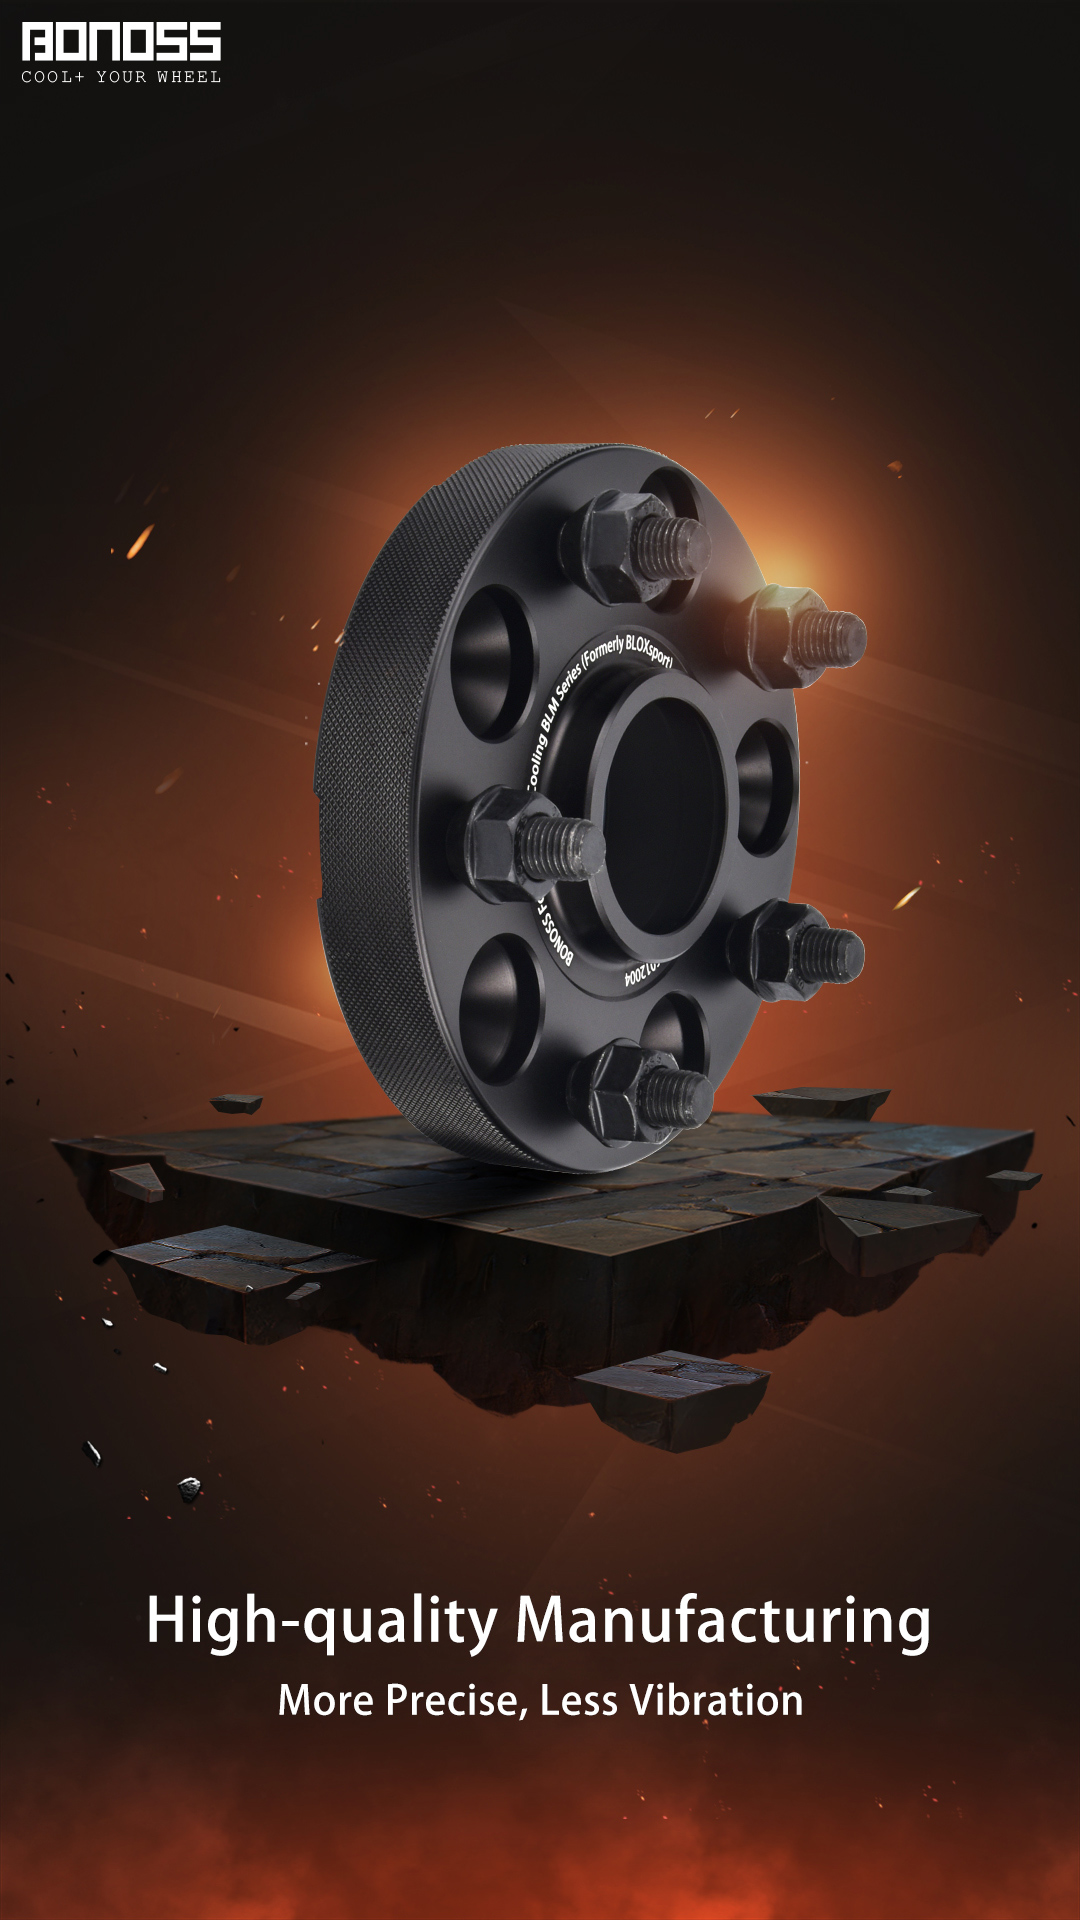 High-quality Manufacturing for Wheel Spacers Safety BONOSS Hubcentric Wheel Spacers